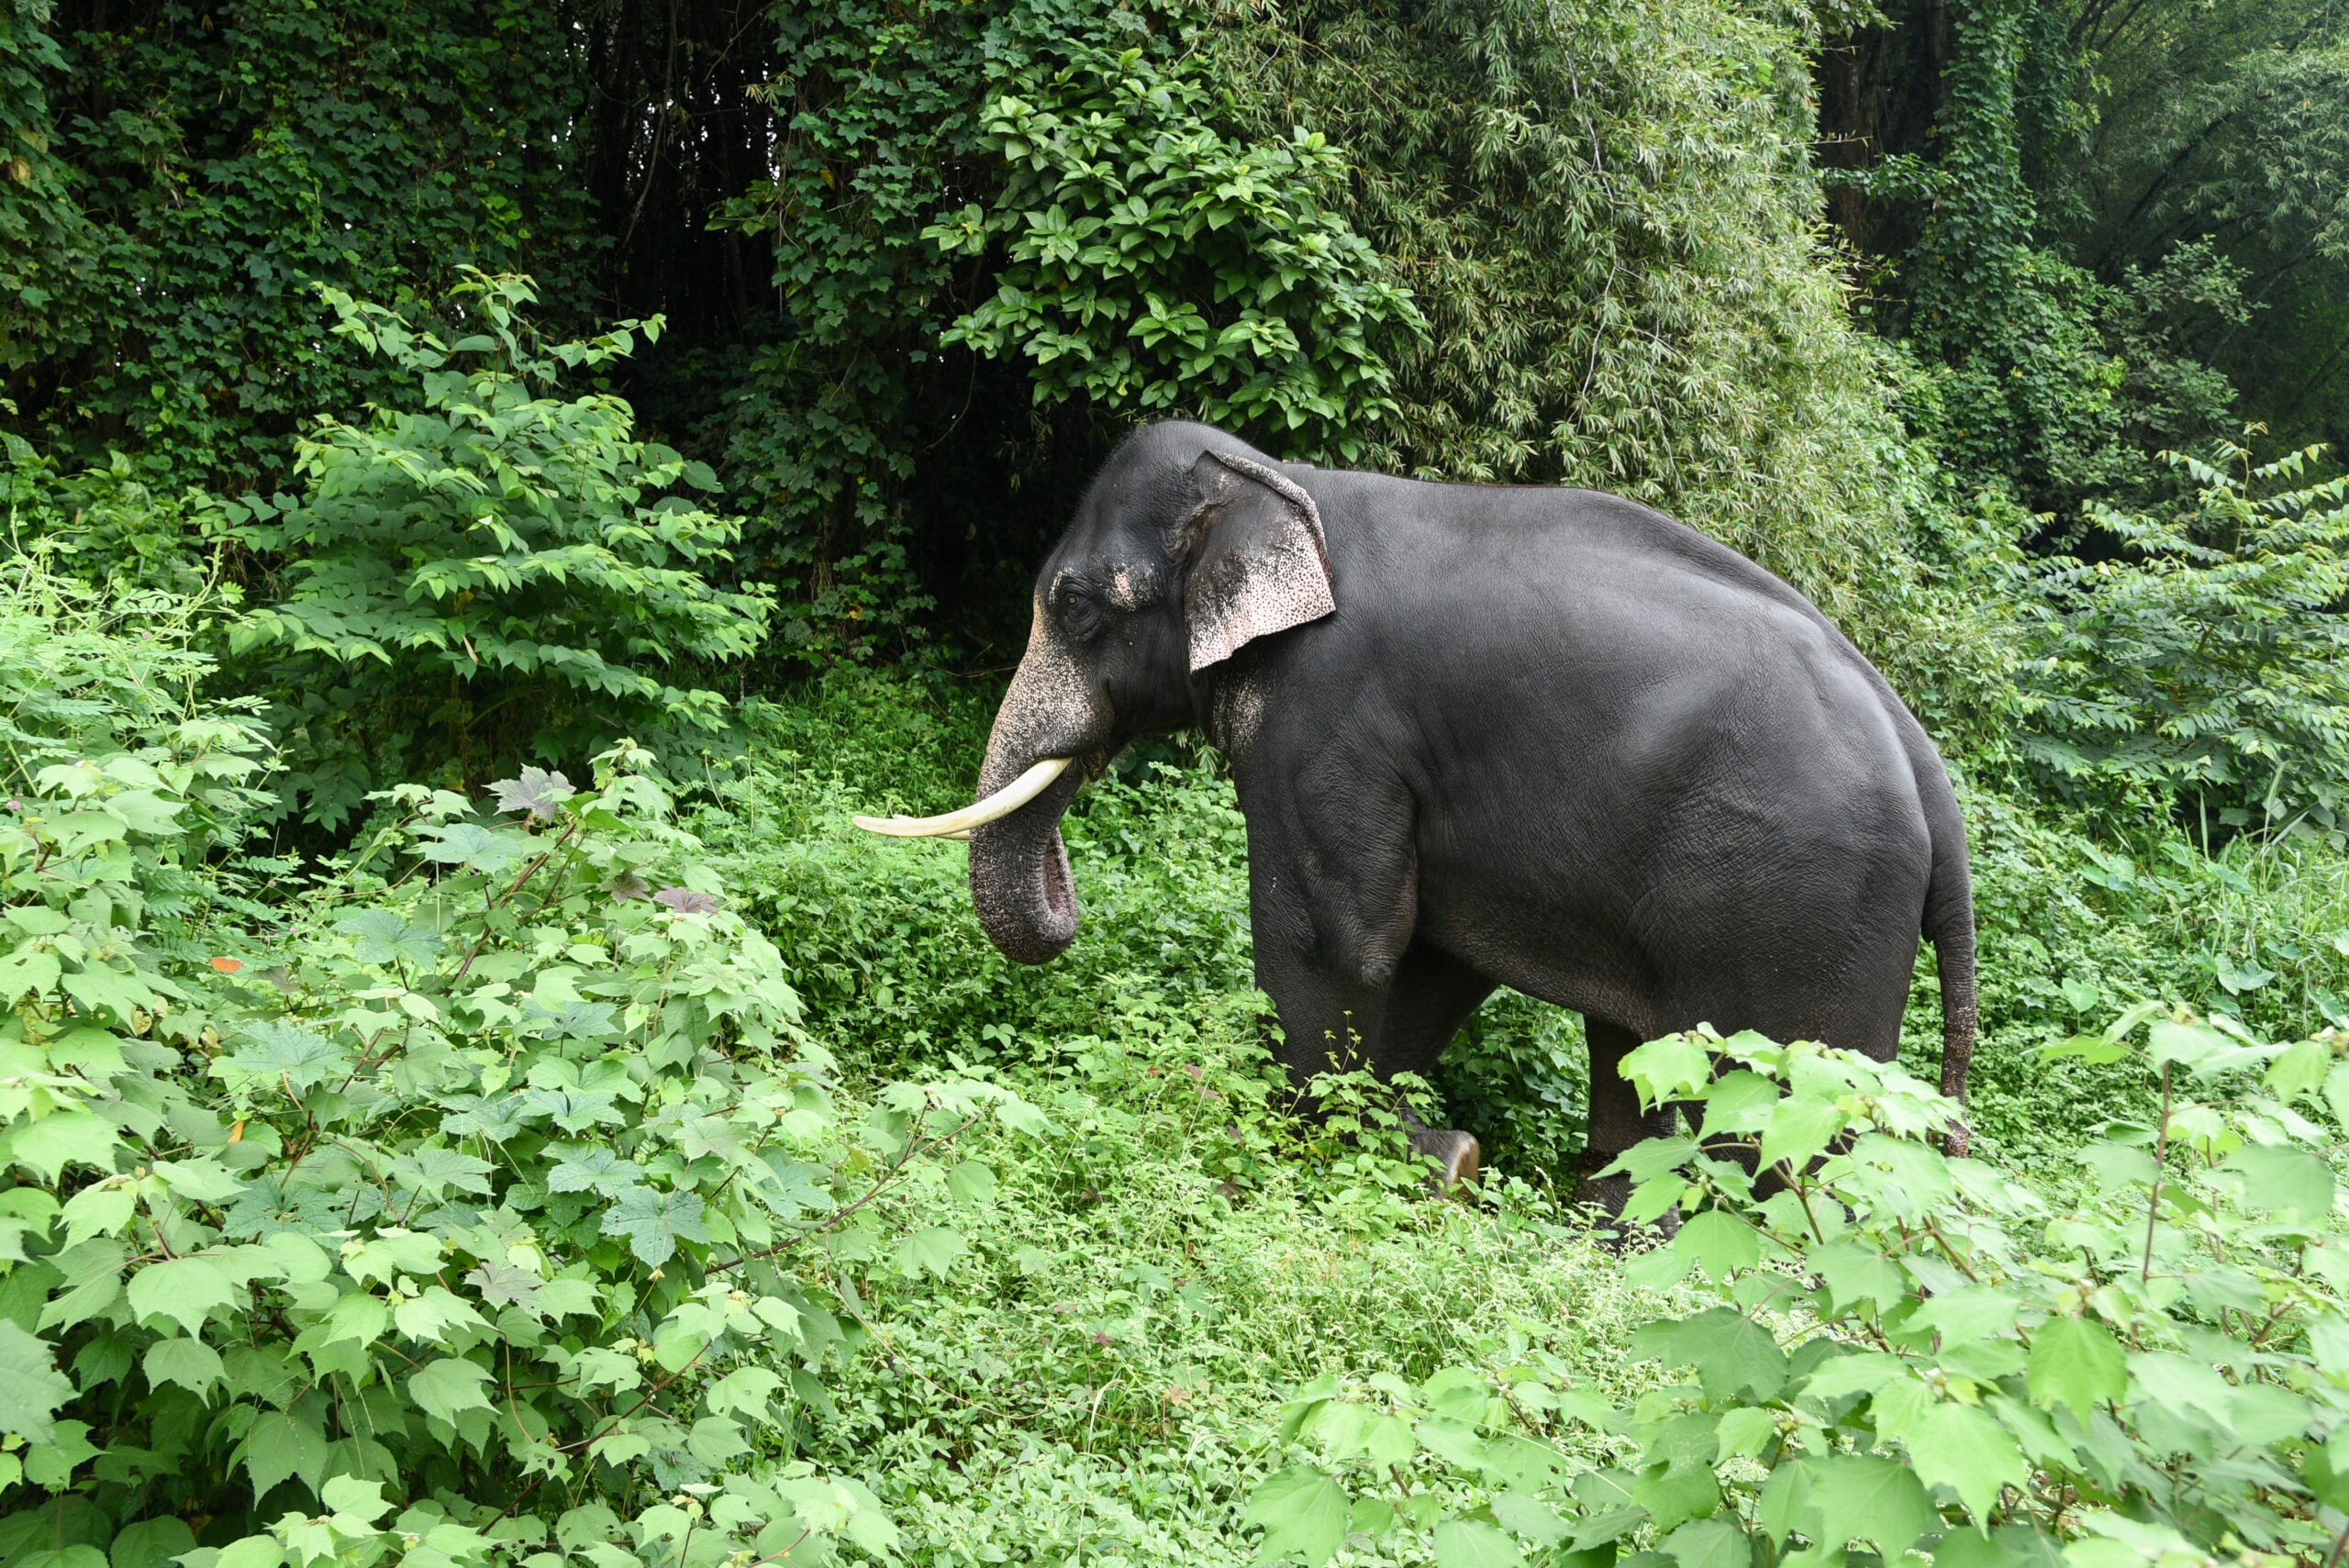 Explore Kerala Wildlife In Our 3 Day Wildlife And Culture Tour Of Thekkady From Kochi